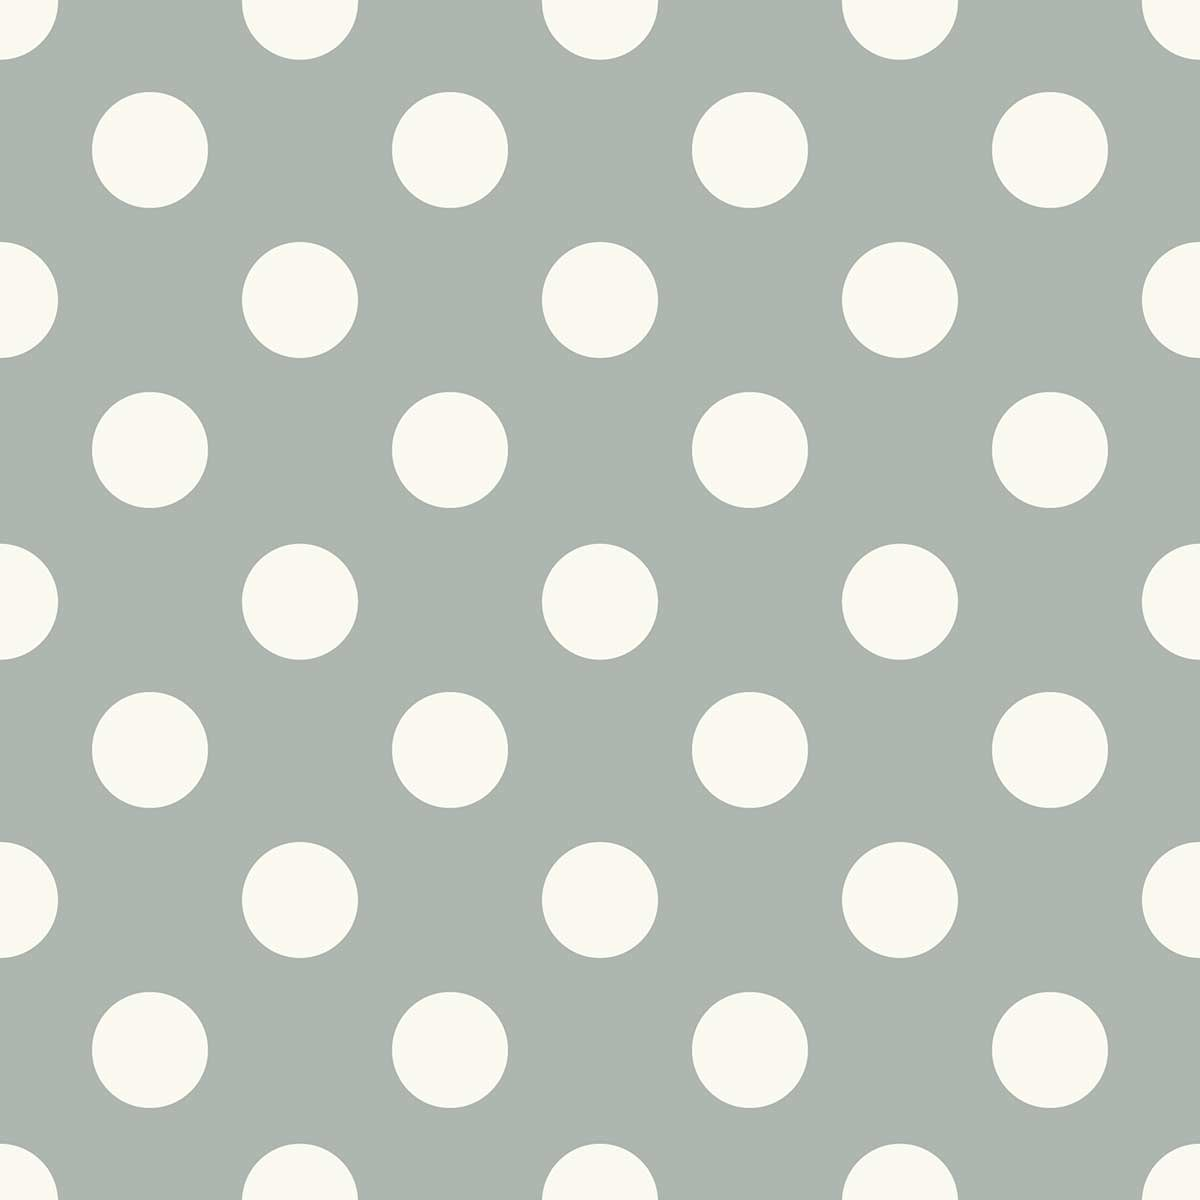 Image showing a Polka Dot flooring used in a blog post about Polka Dot floor tiles from forthefloorandmore.com